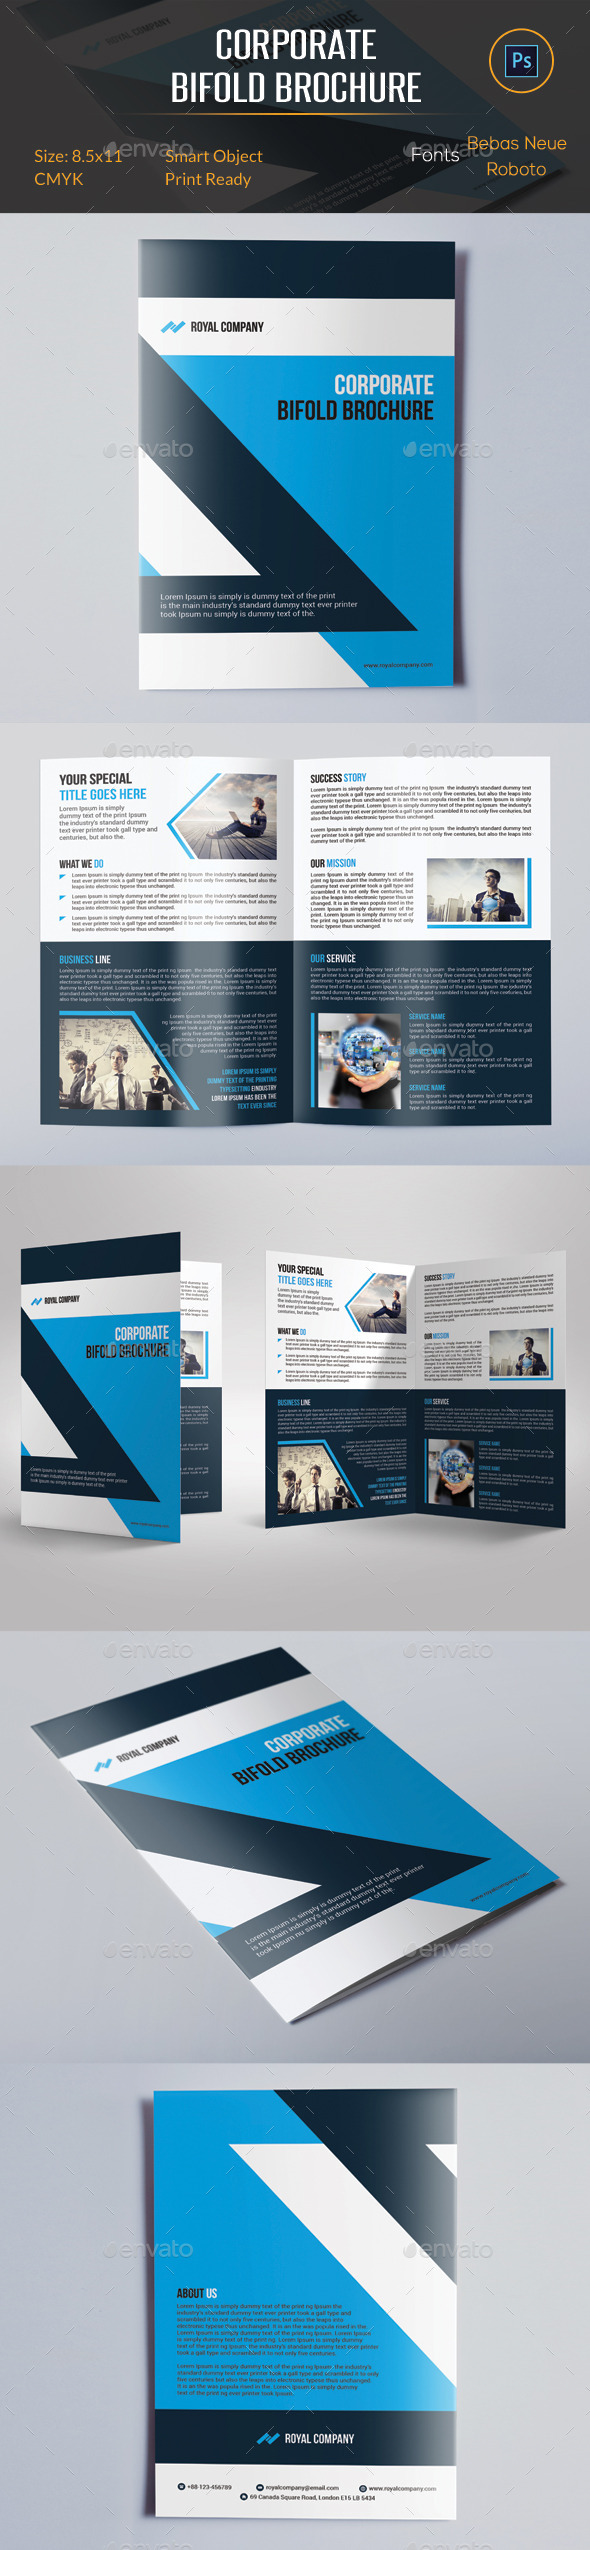 GraphicRiver Corporate Bifold Brochure 10959644